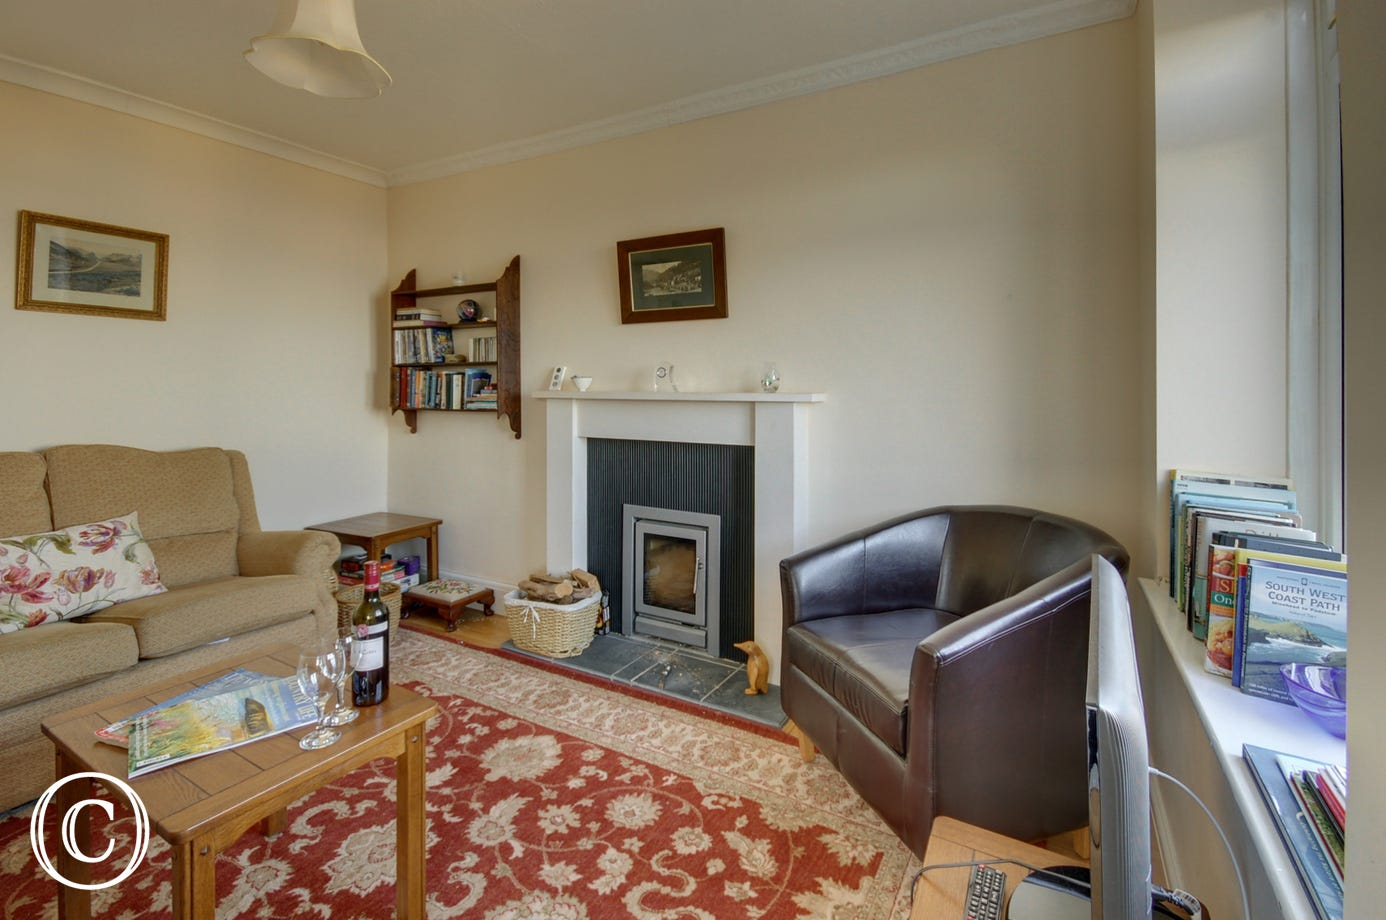 The cosy living room has underfloor heating and a wood burning stove for the cooler seasons